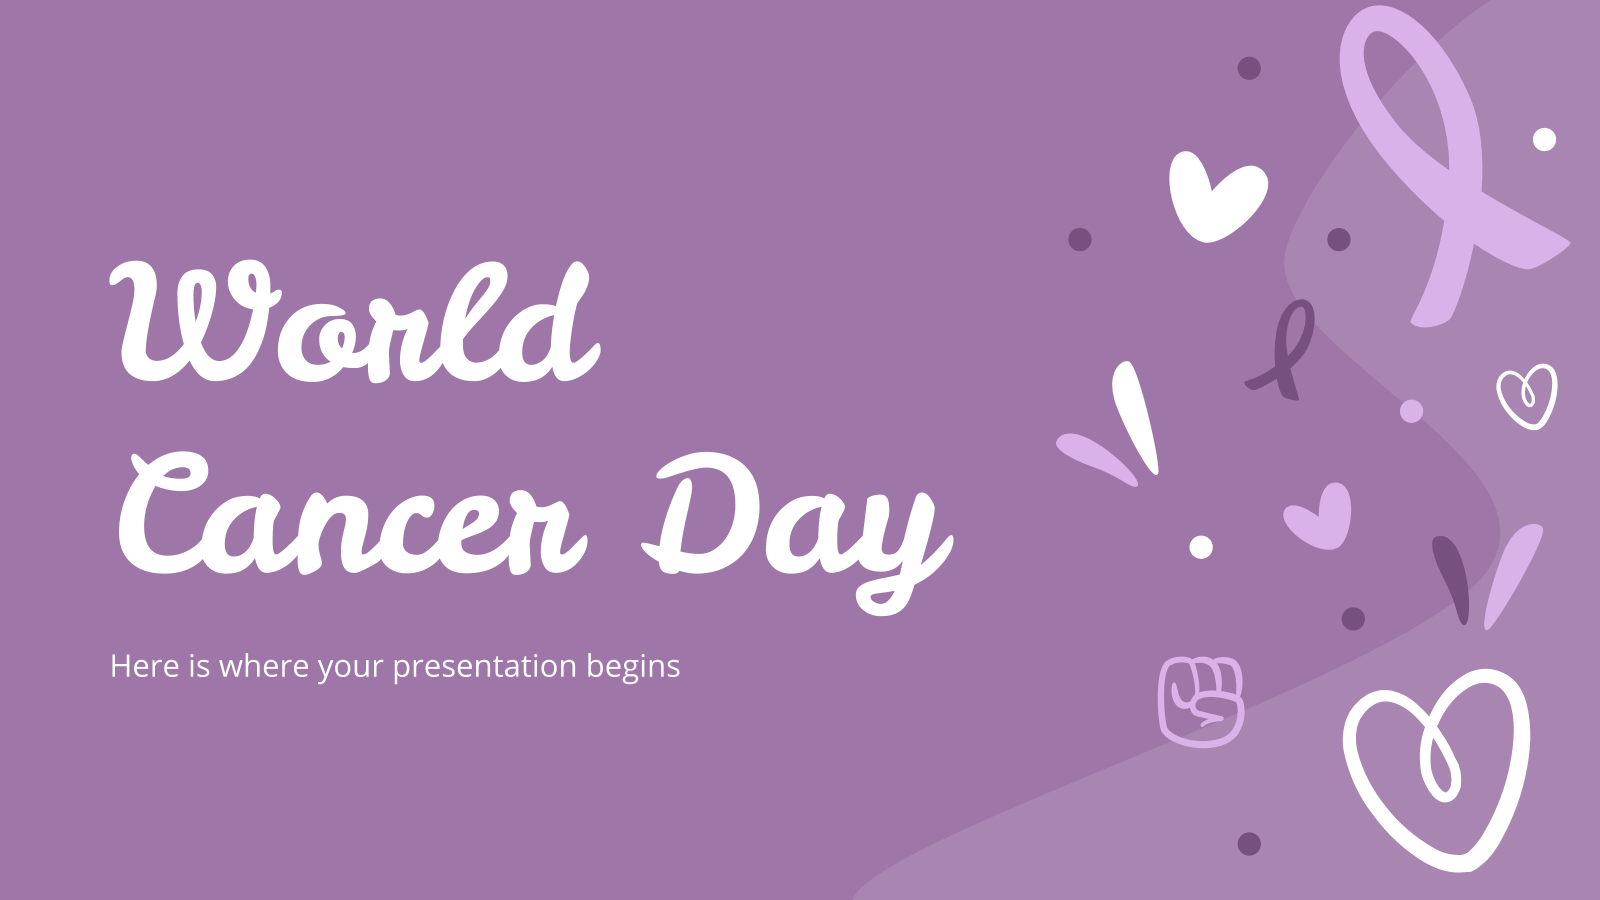 World Cancer Day presentation template